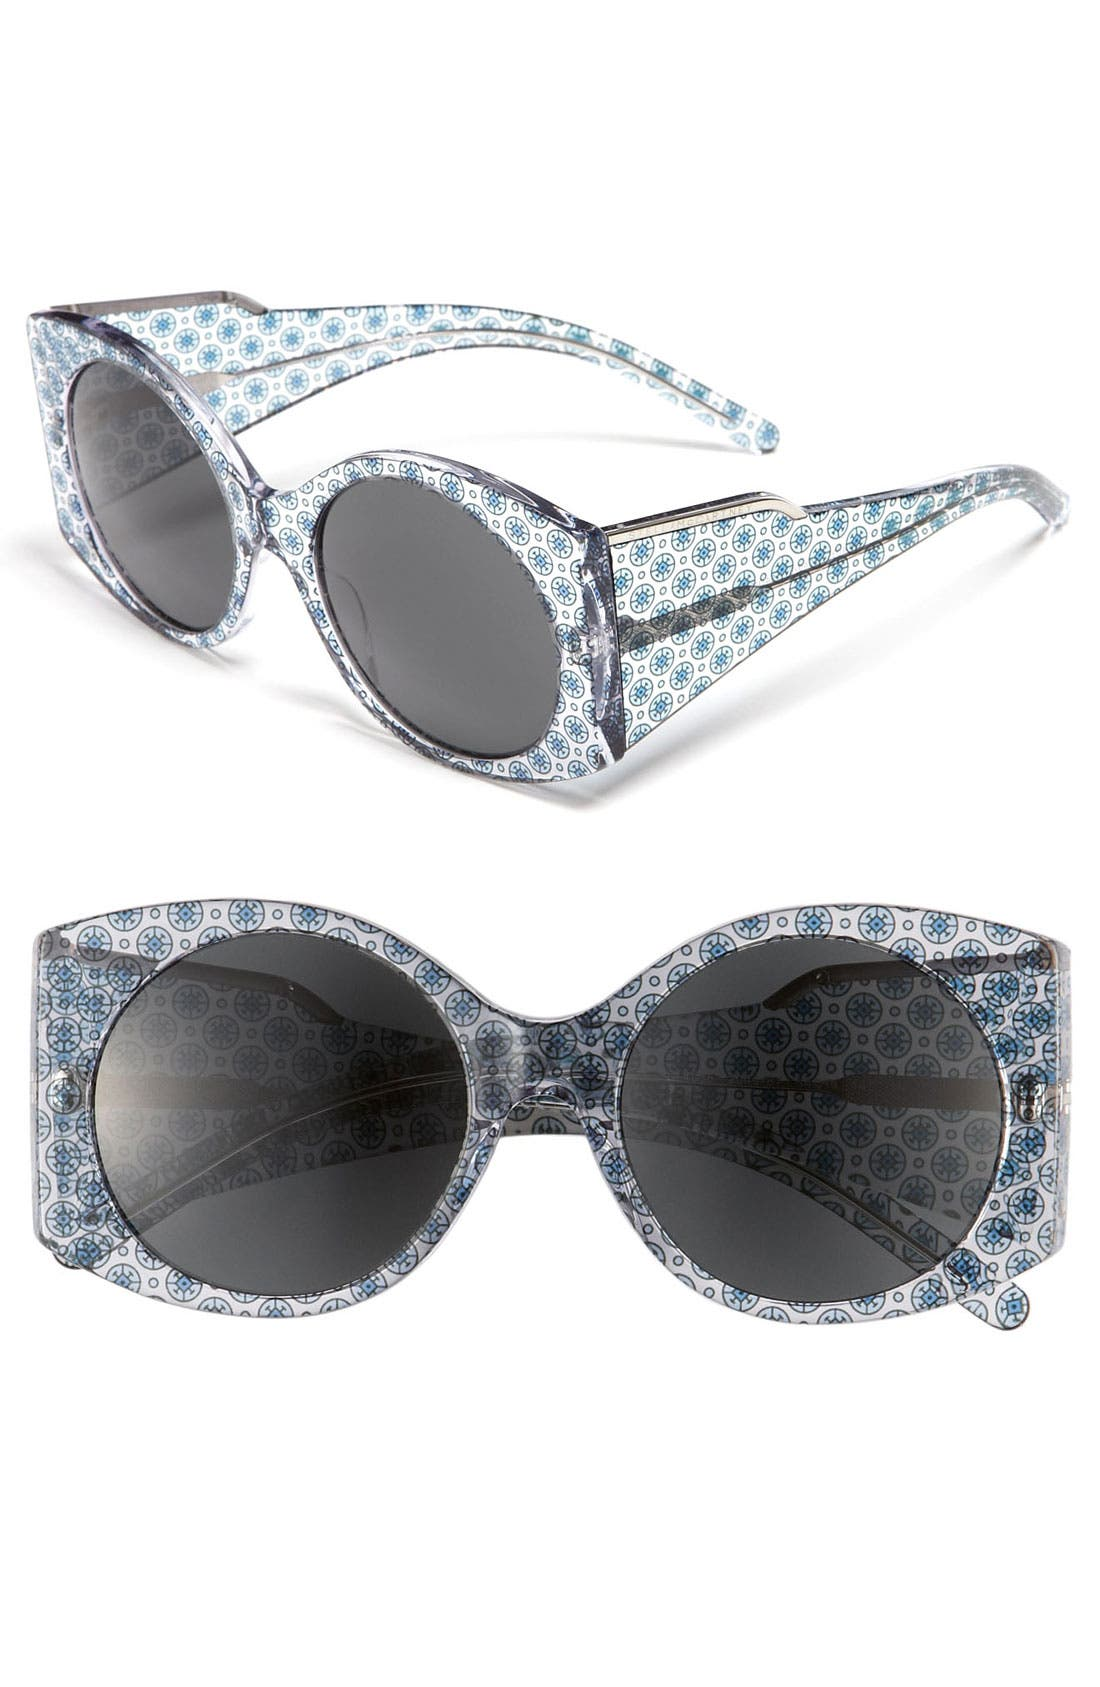 Alternate Image 1 Selected - Stella McCartney 'Summer Runway Collection' Sunglasses